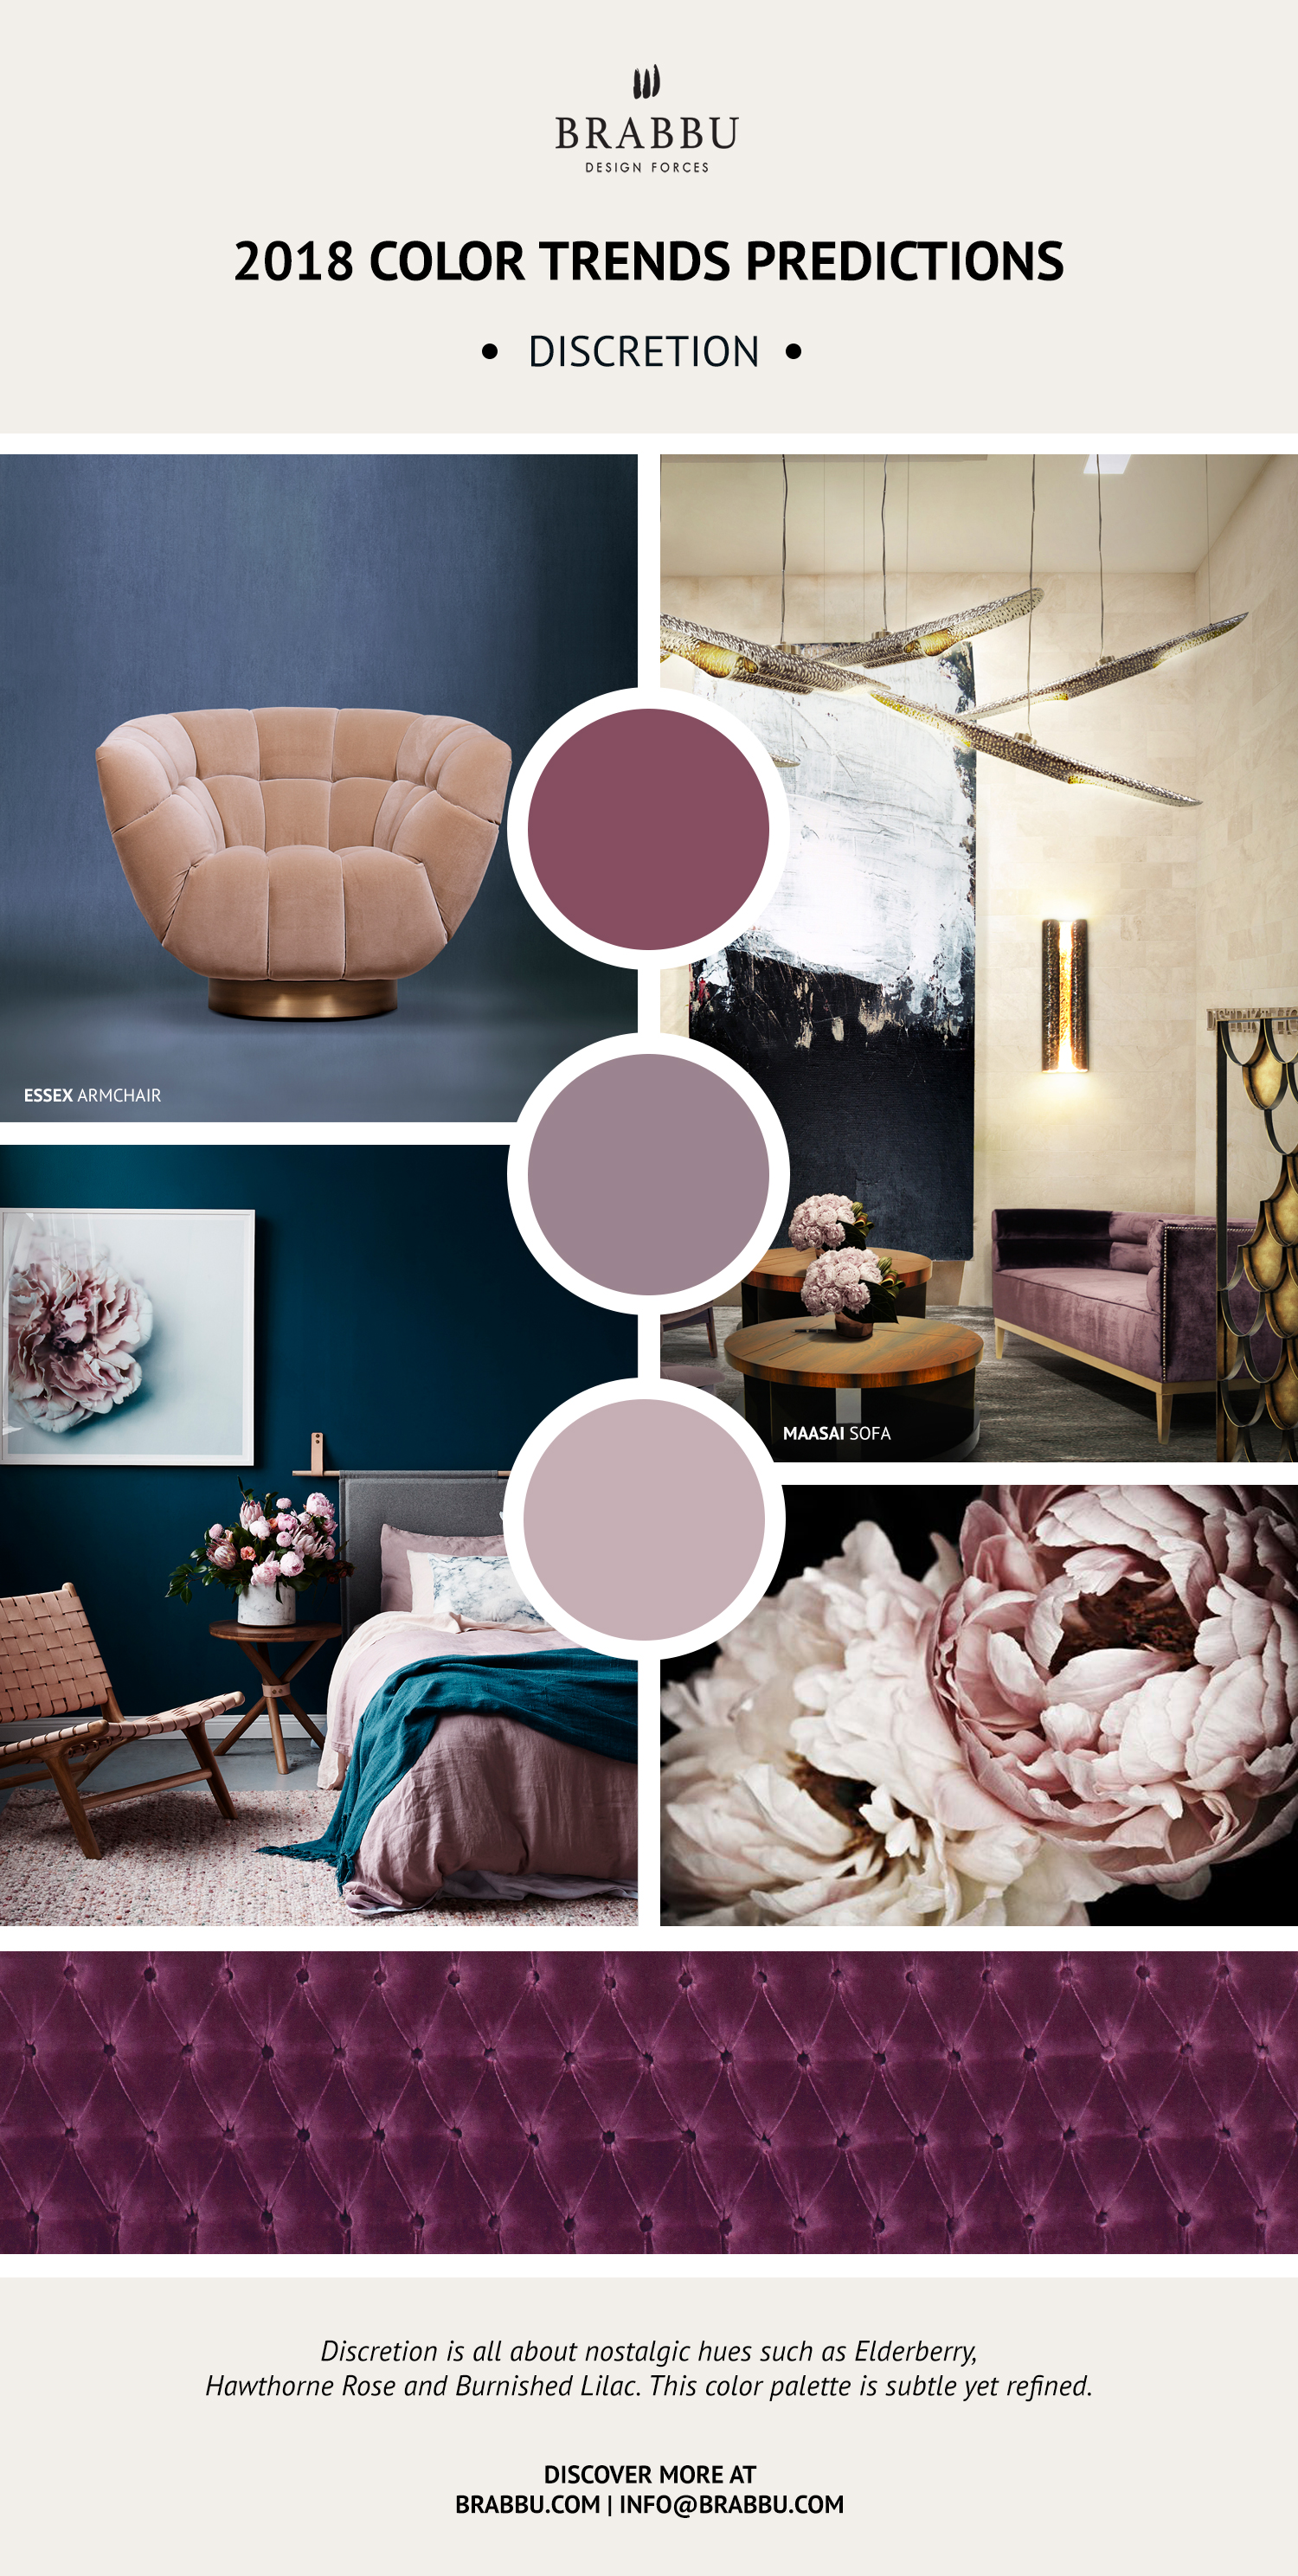 Pantone Color Trend Predictions For 2018 color trend Pantone Color Trend Predictions For 2018  F3768E399AEFA63C7075349ACE63CDF765D8A1399211912B7E pimgpsh fullsize distr